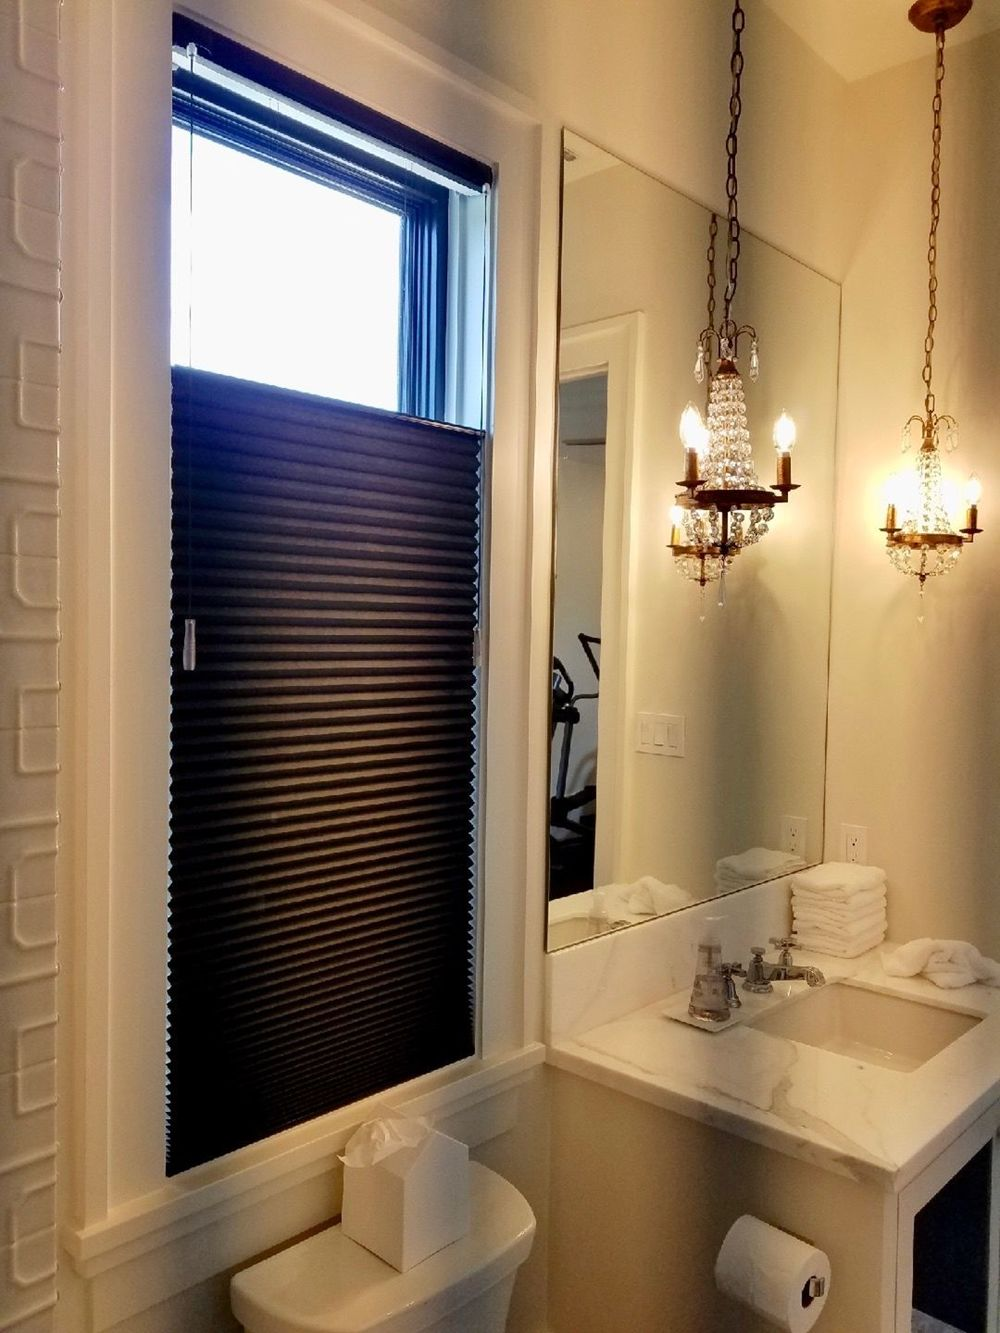 This primary bathroom offers a small single sink lighted by a gorgeous pair of chandeliers hanging from a tall ceiling.